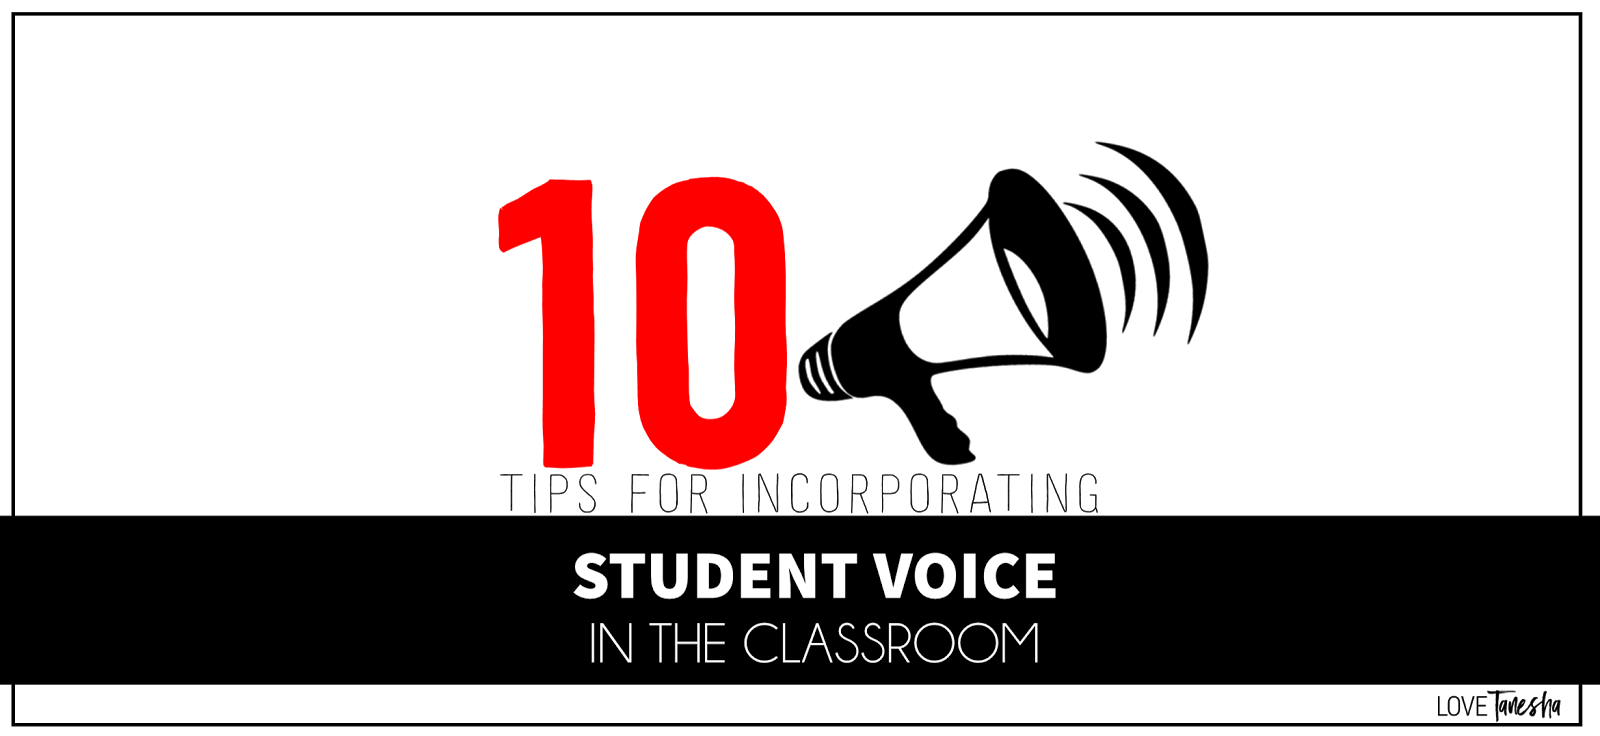 Student Voice in the Classroom